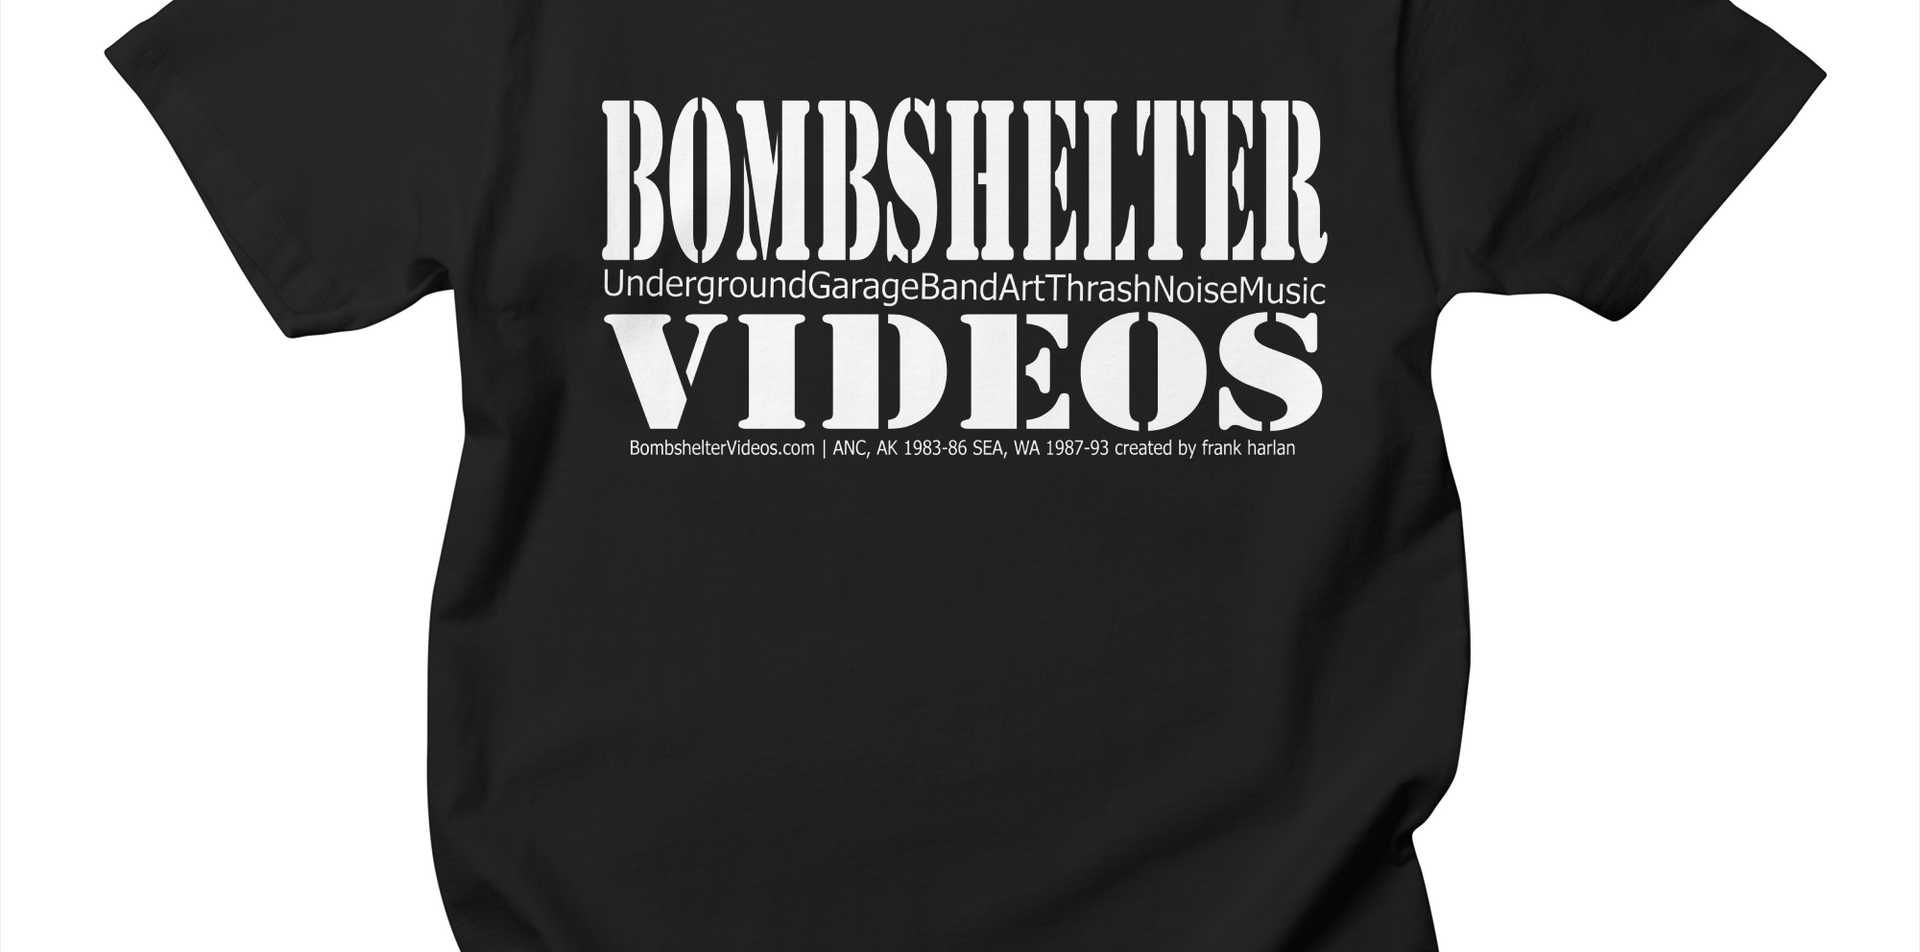 bombshelter-videos--WORDS.png